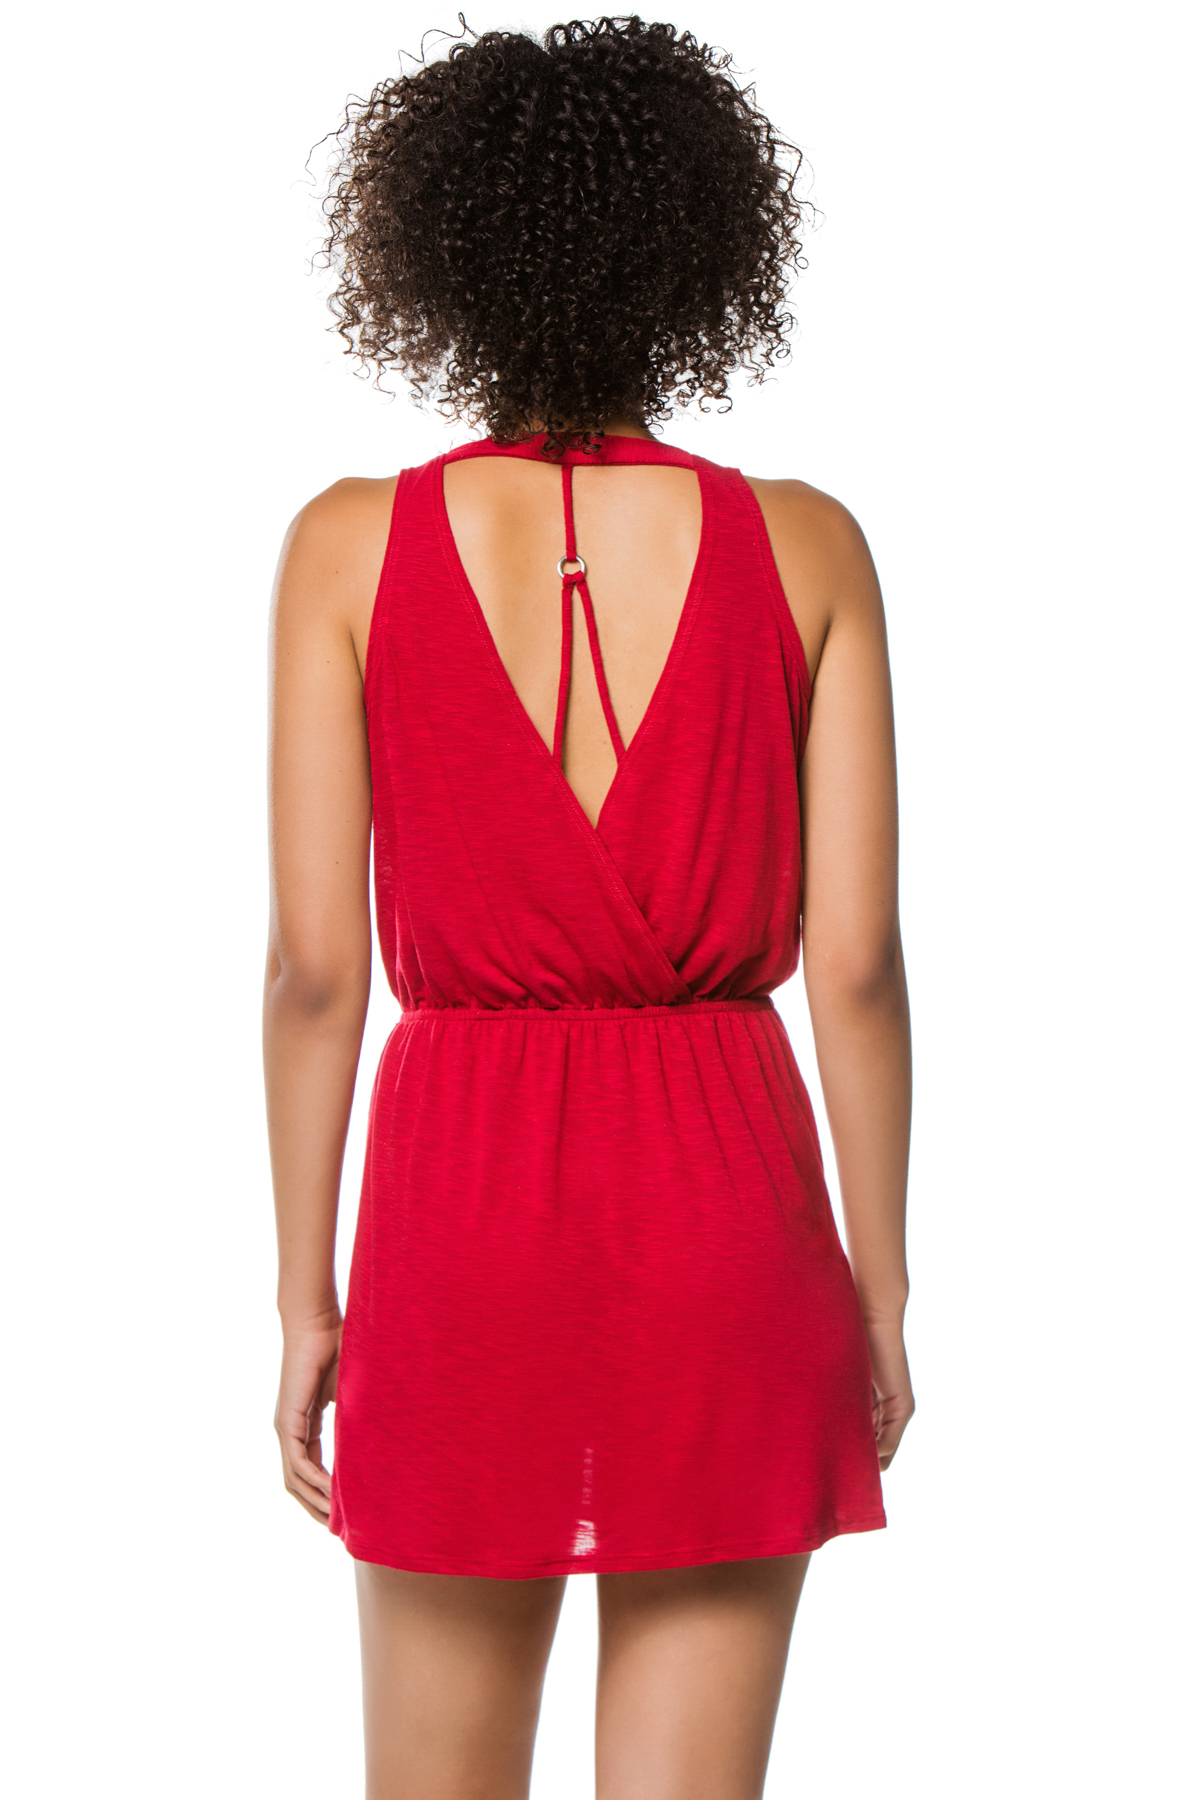 Scoop Neck Tank Dress - Crimson 2